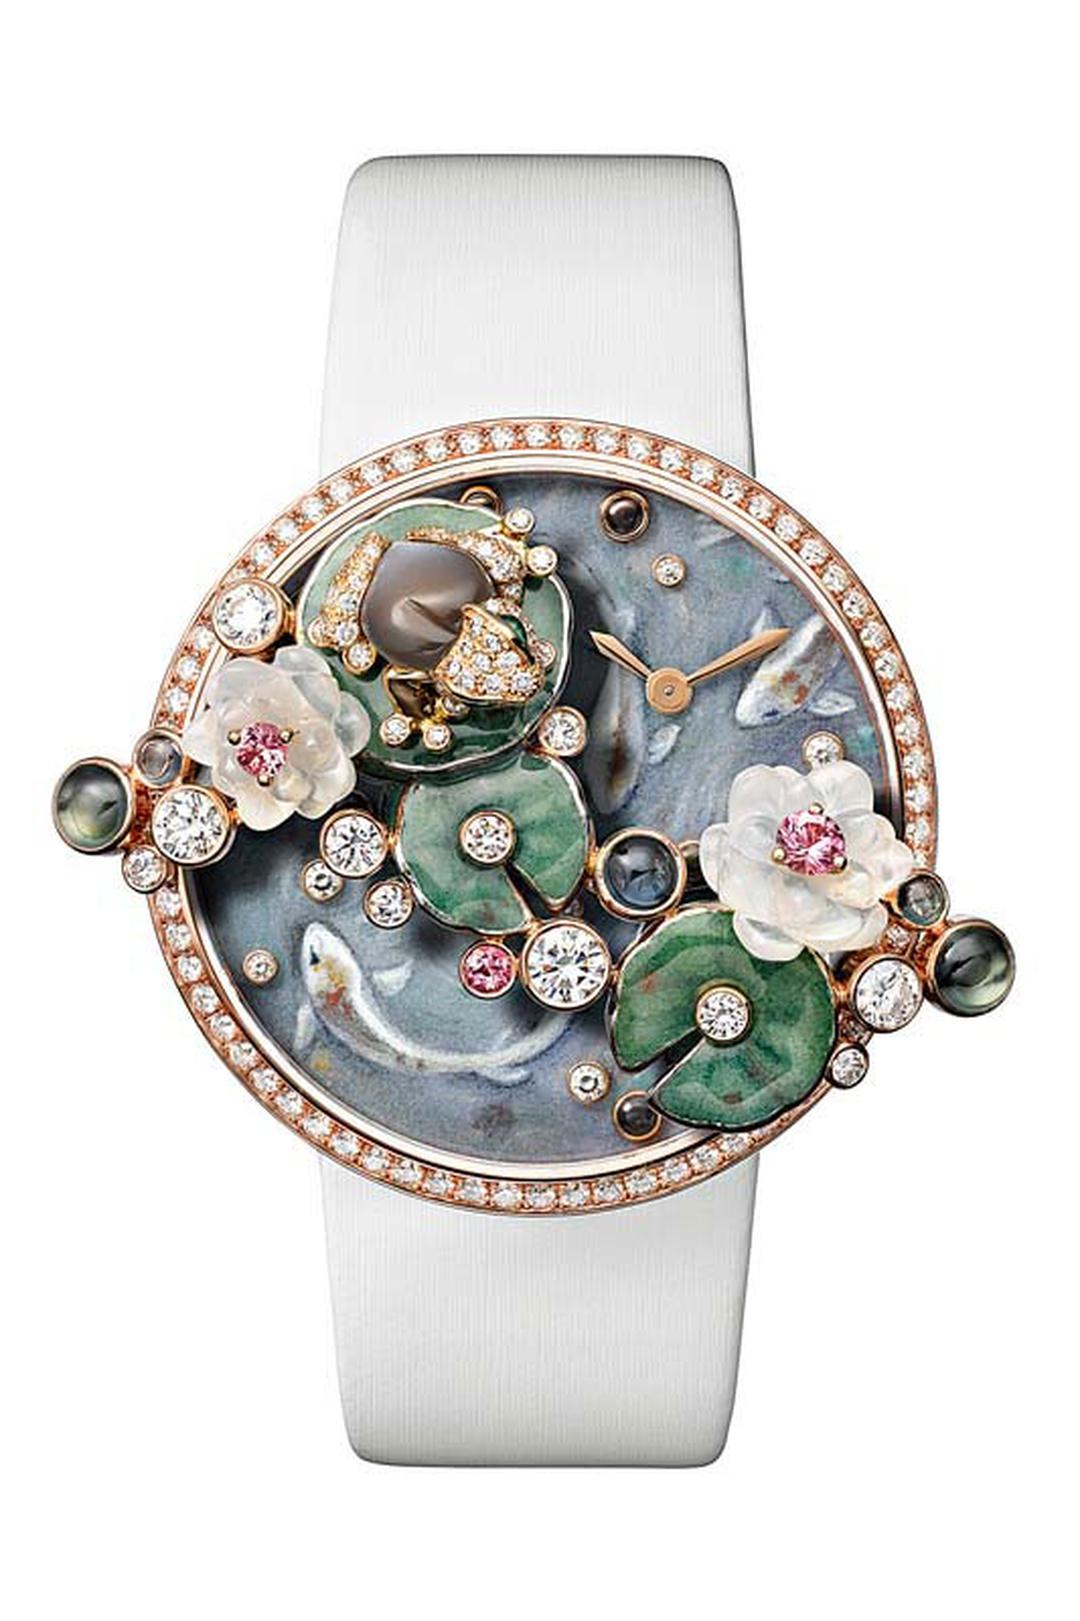 BEST WOMEN'S Bling WATCHES 2021 Cartier Fabuleux Frog Watch with Brooch Removed; Leaves In 18ct White Gold, Enamelled and Set with Brilliant-Cut Diamonds